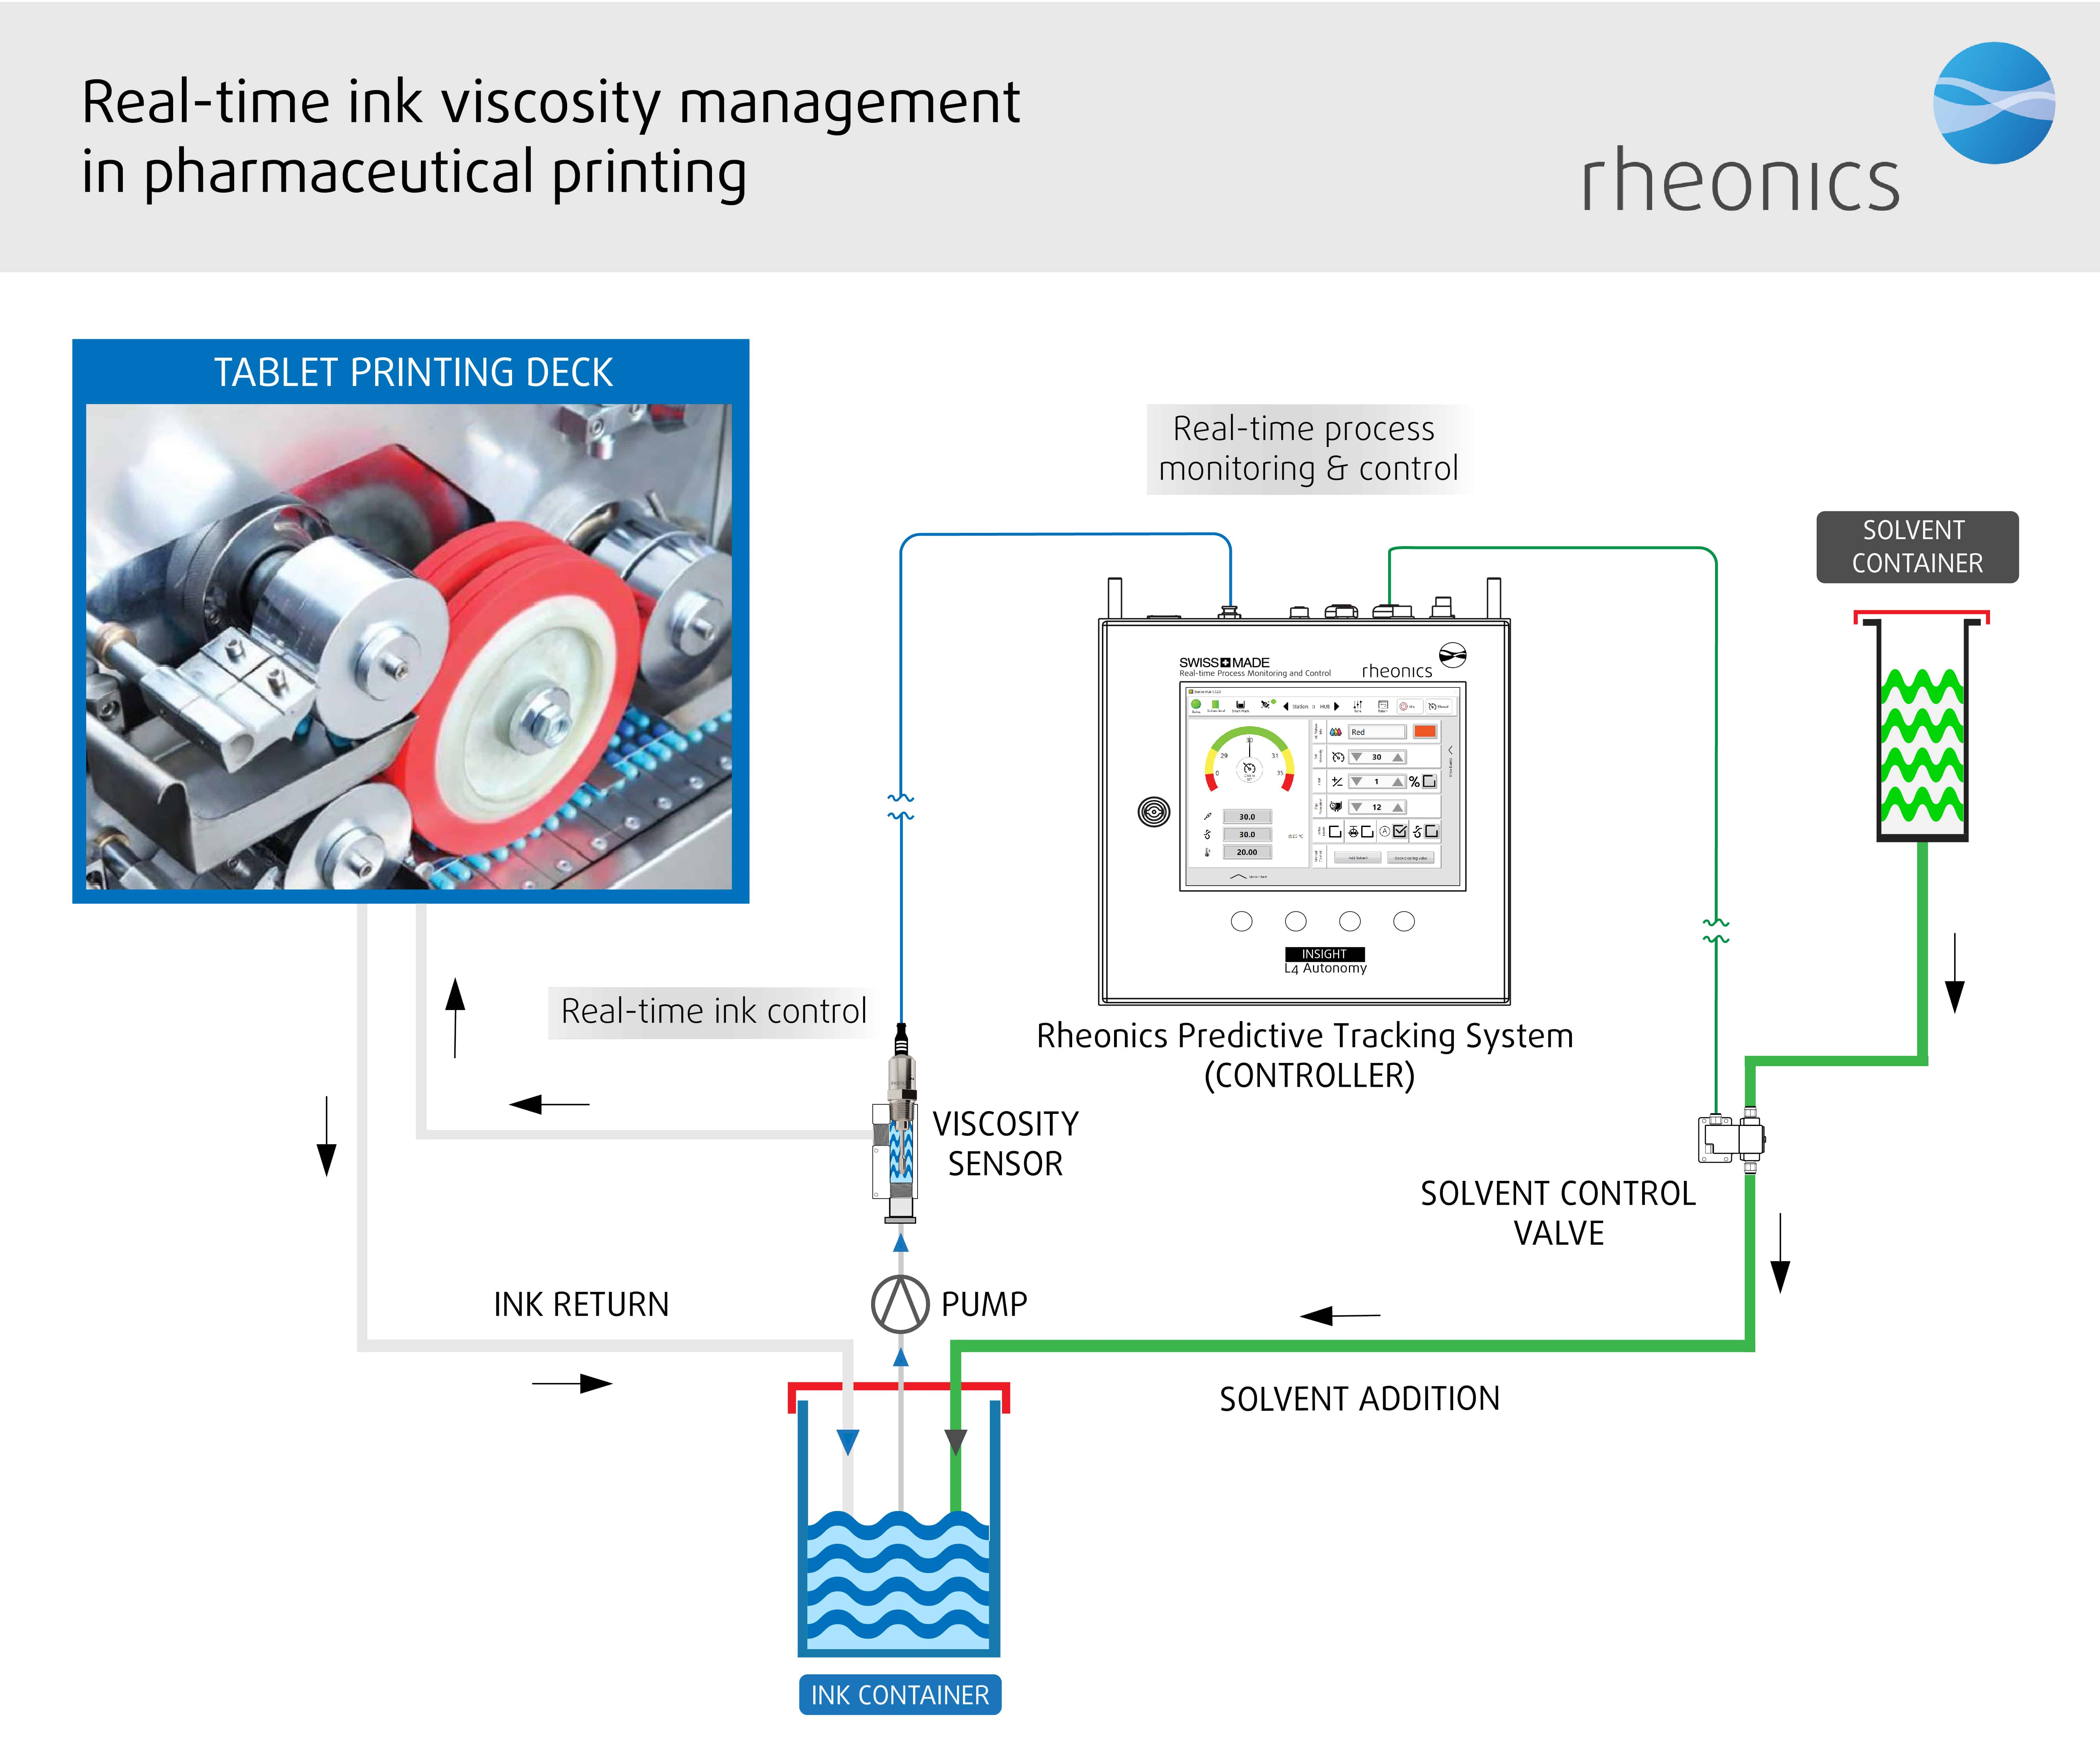 Schematic representation of Rheonics inline viscometer and RPTC system showing the inline integration of viscometer in the pharma printing process.